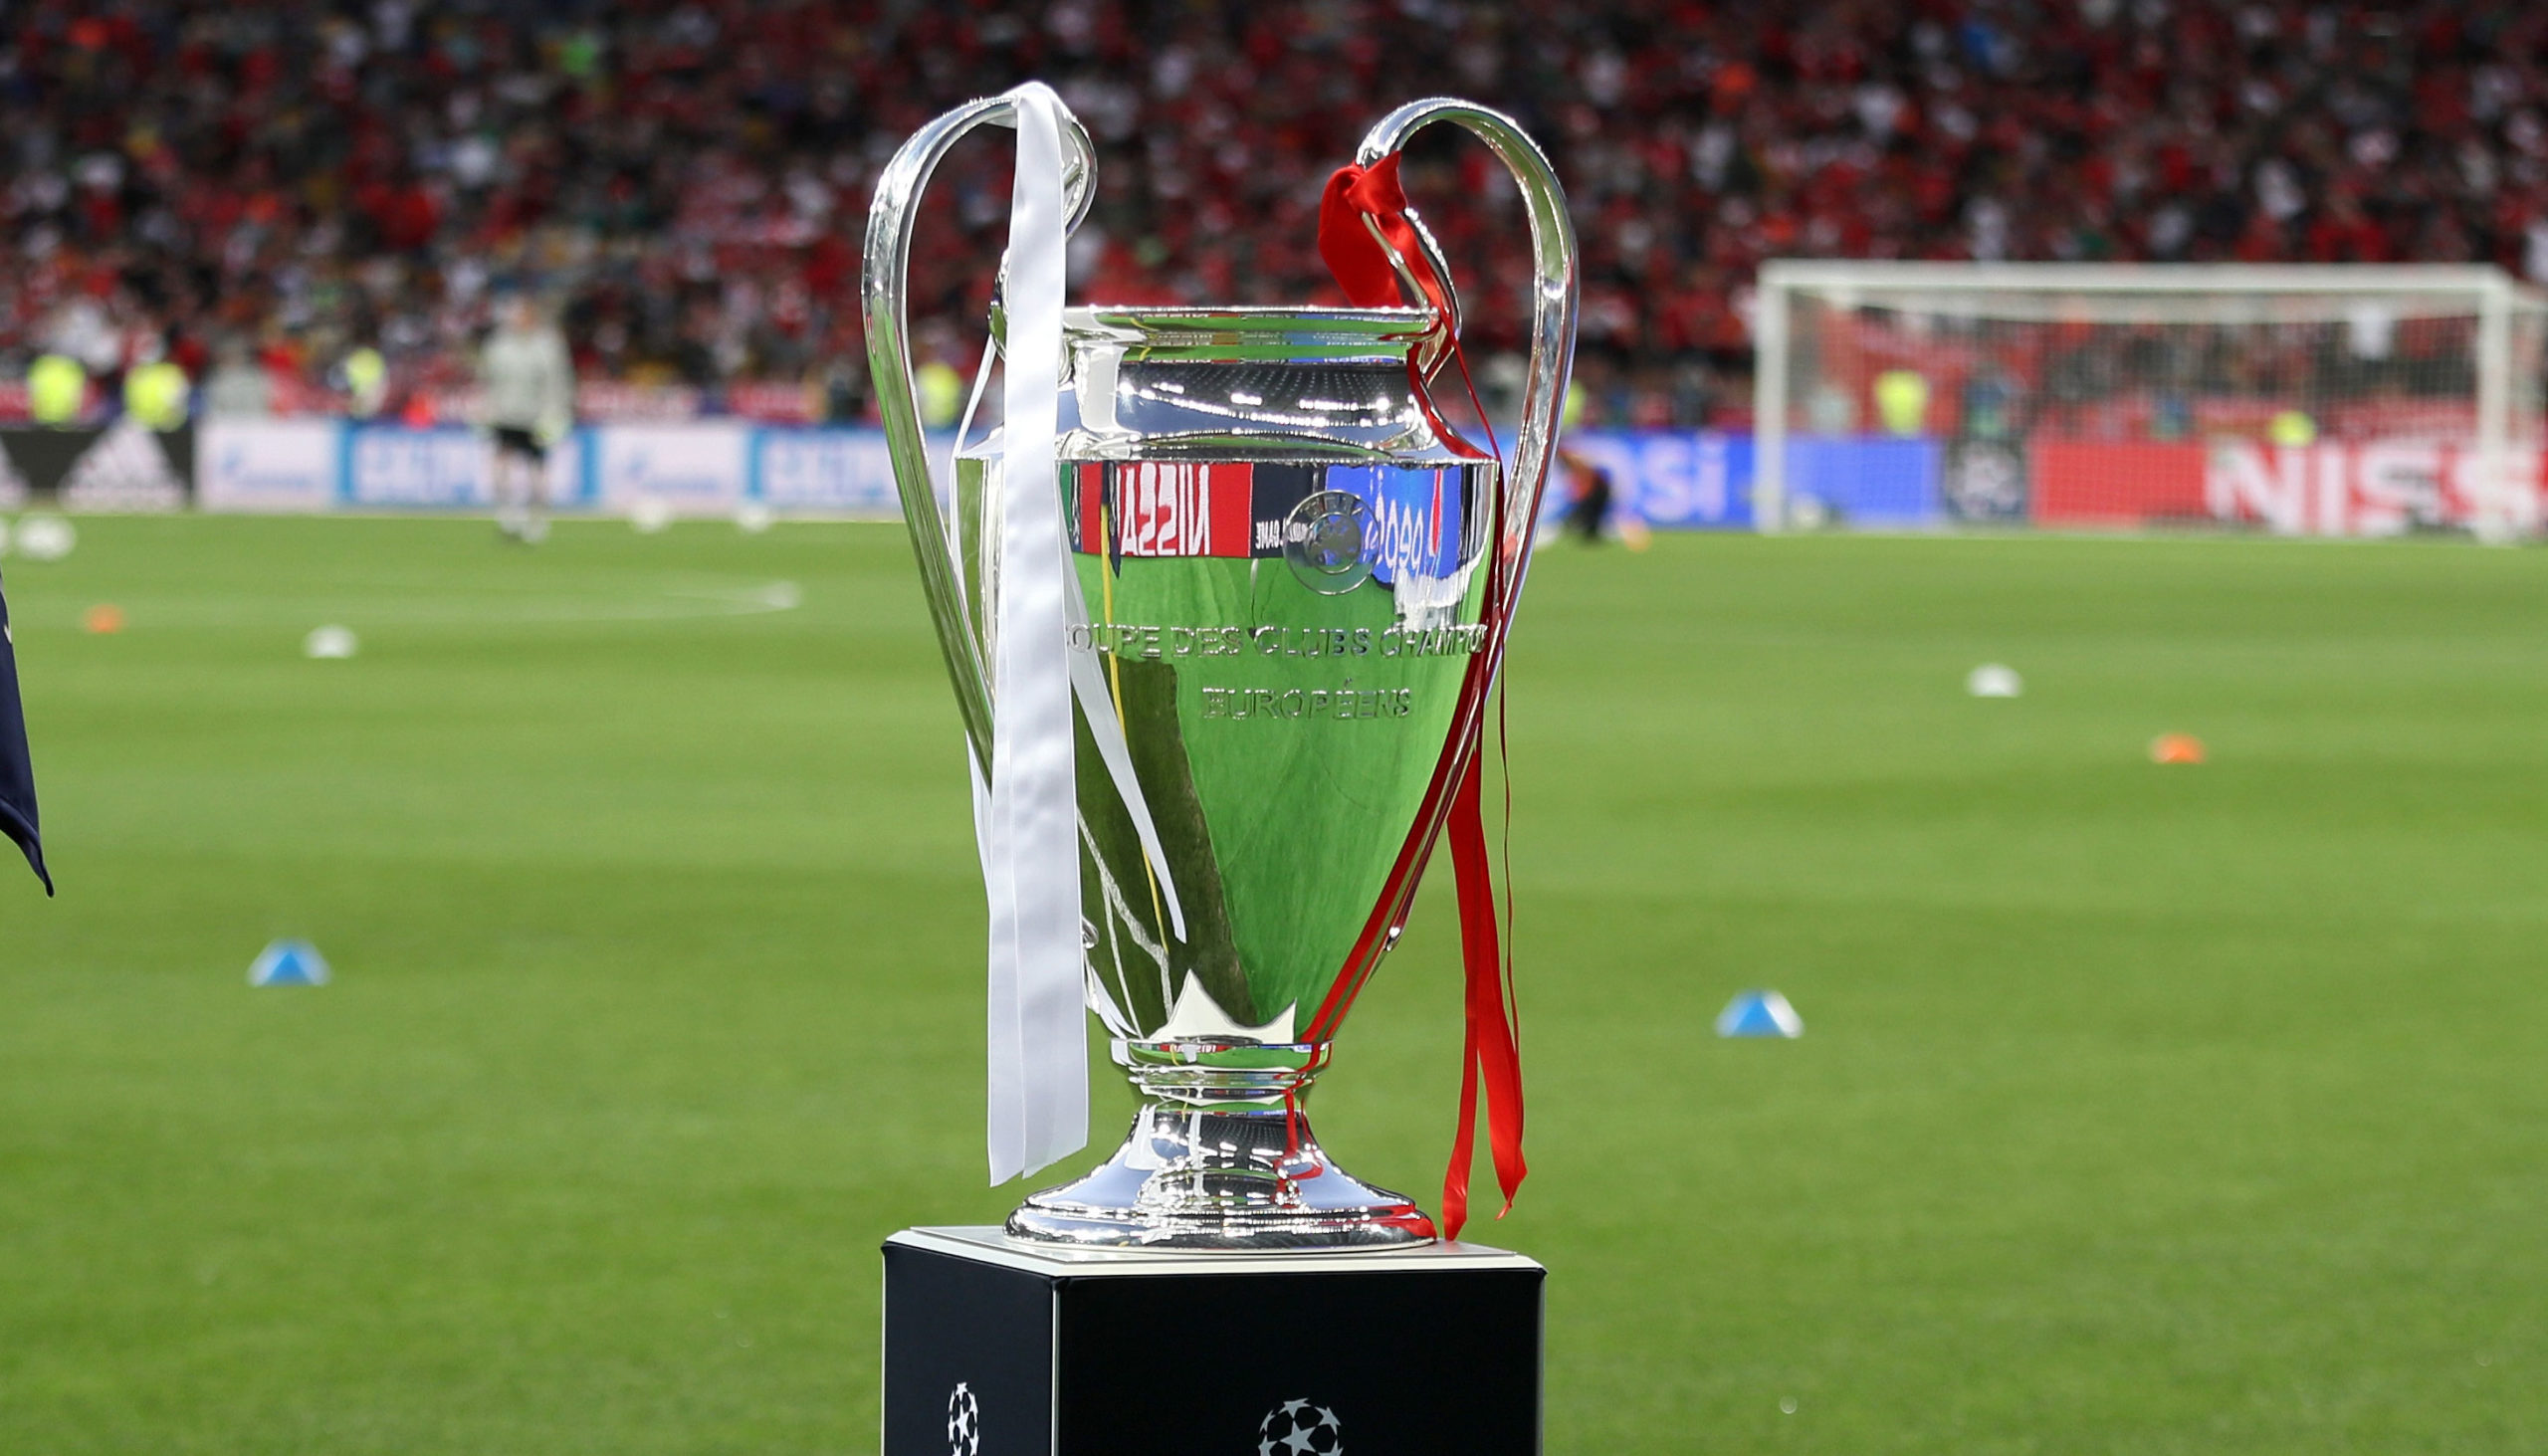 Champions League quiz: Test your knowledge!